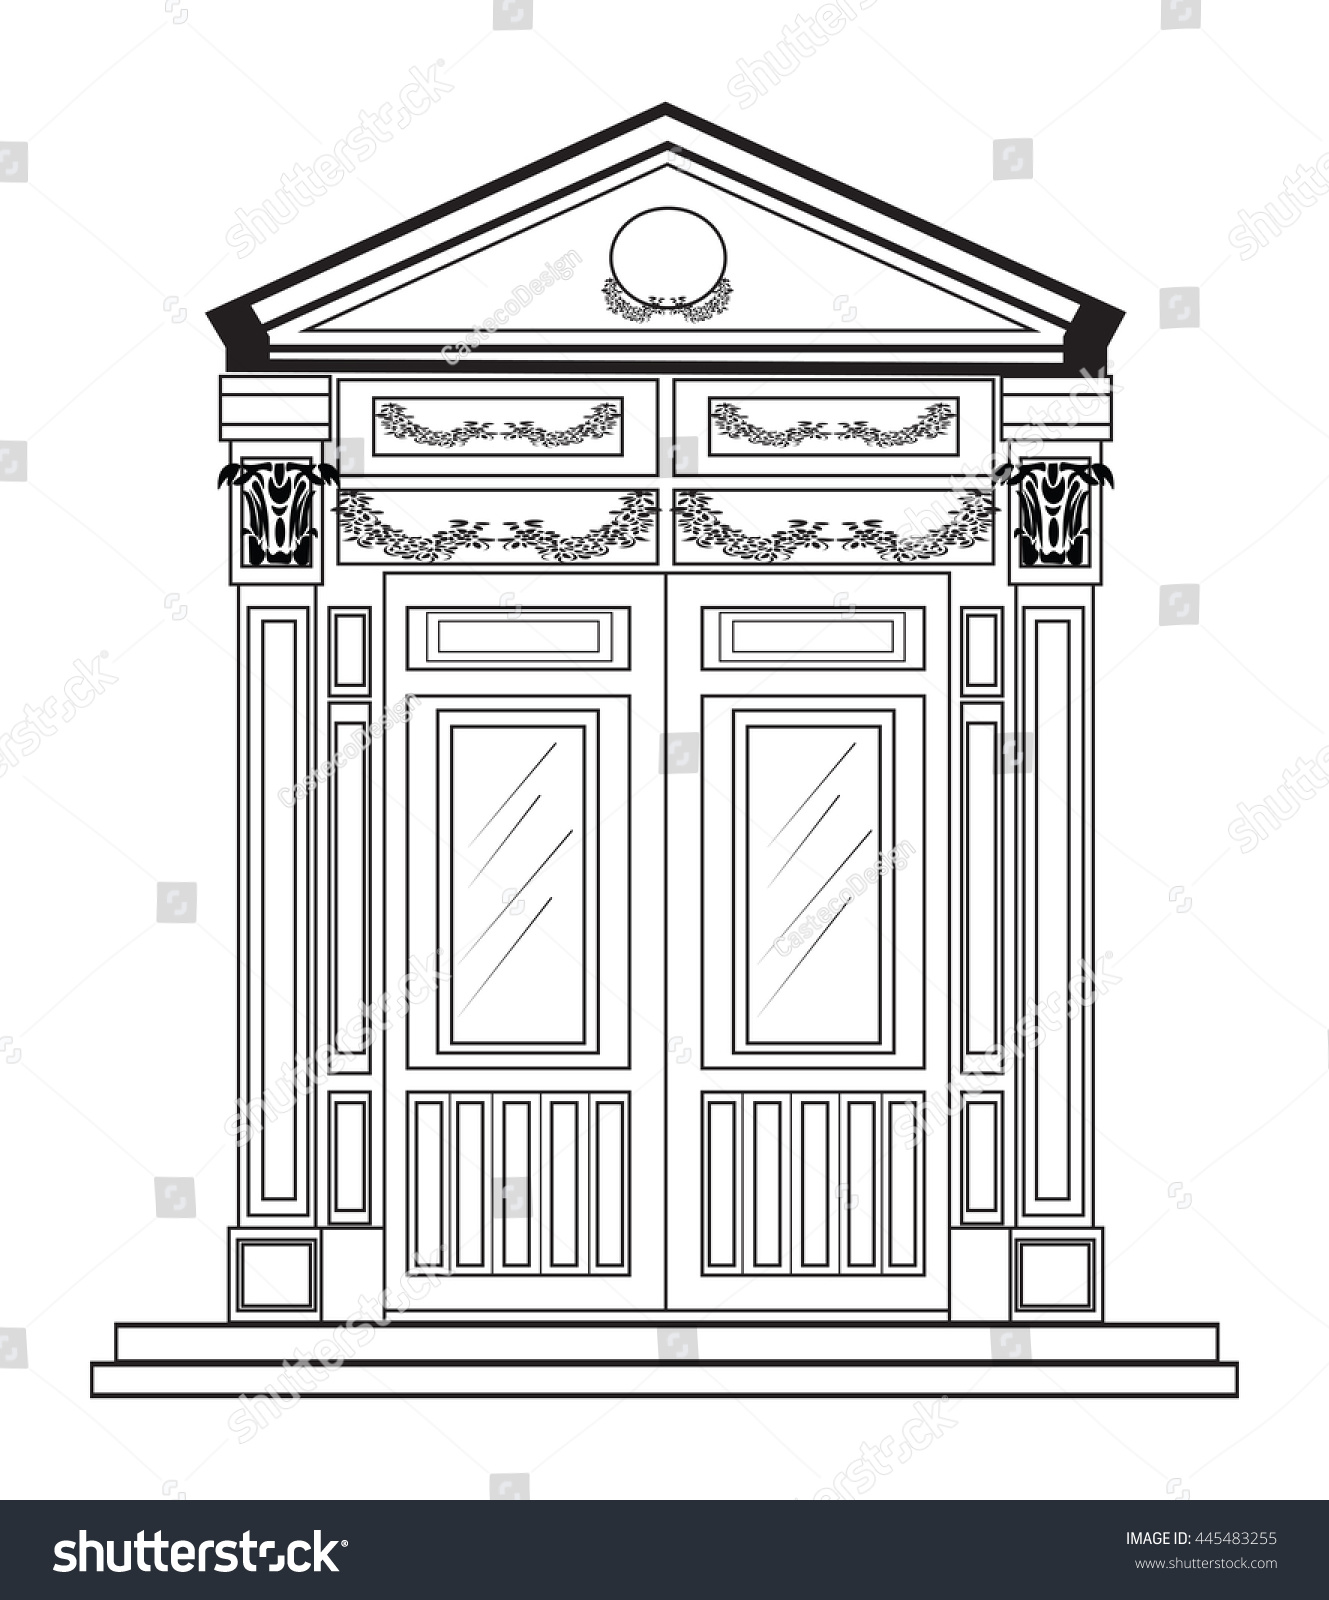 Home Design Architectural Free Download Entrance Classic Style Vector Architectural Facade Stock